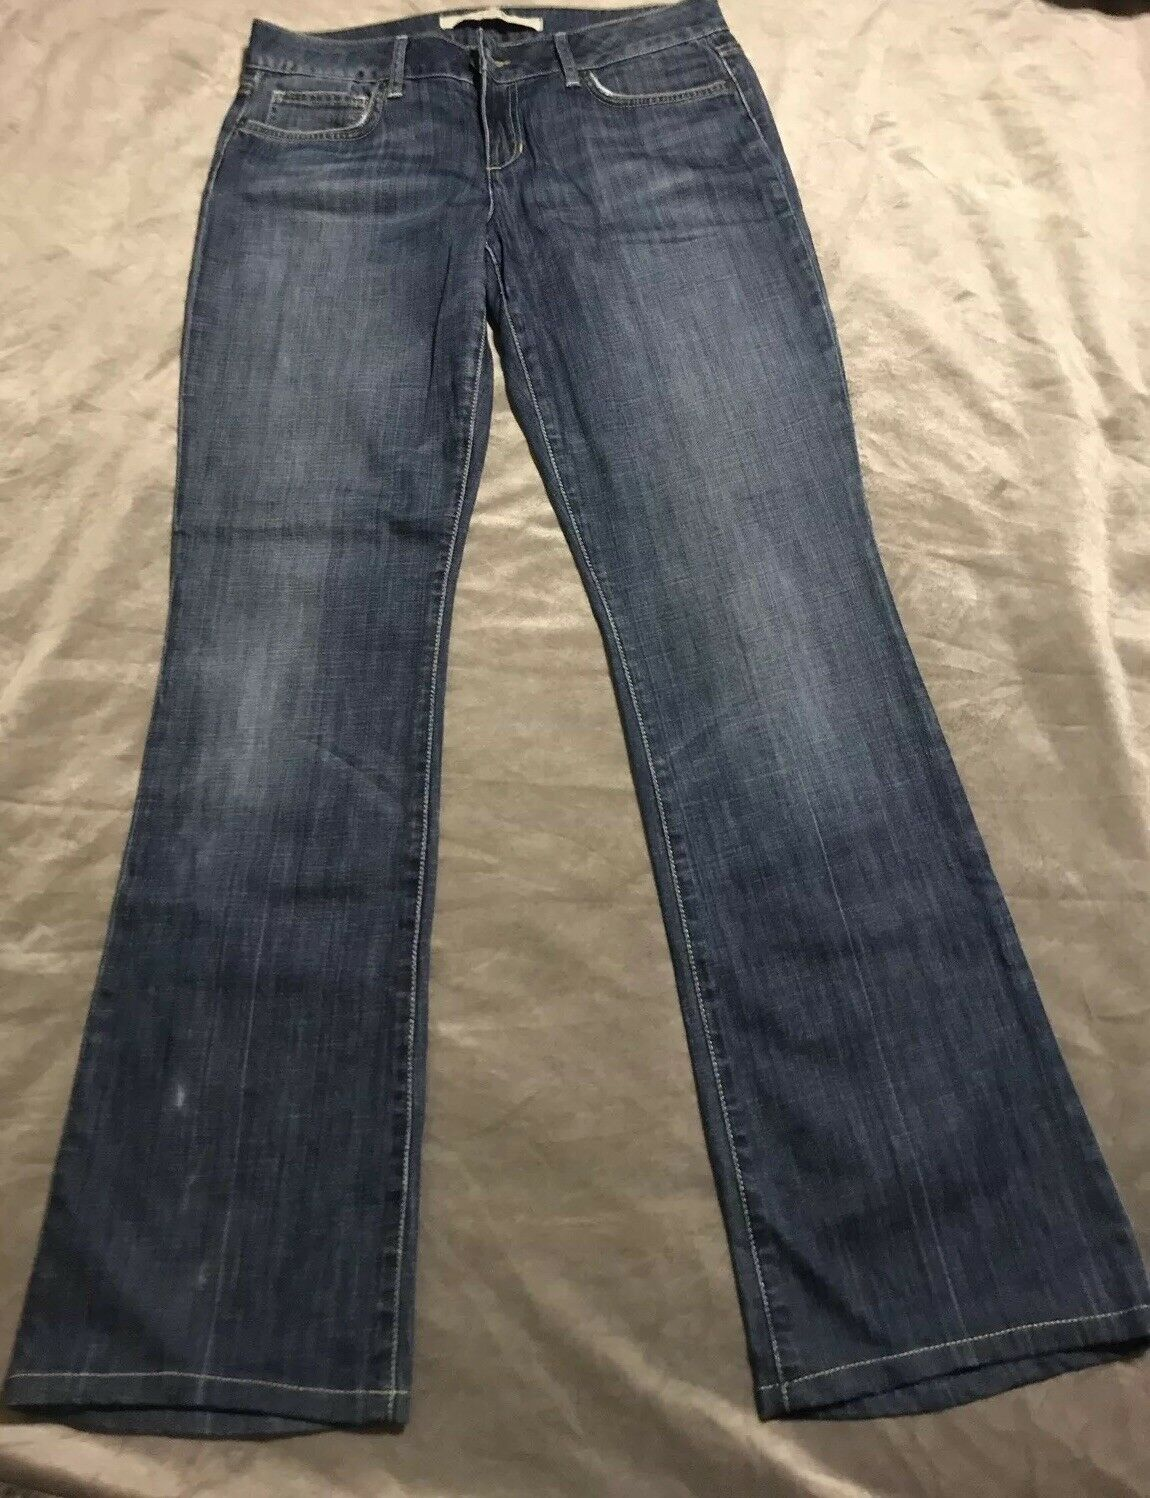 Joes Jeans Honey Fit Womens Mid Rise Bootcut Dark Wash Jeans Size 30